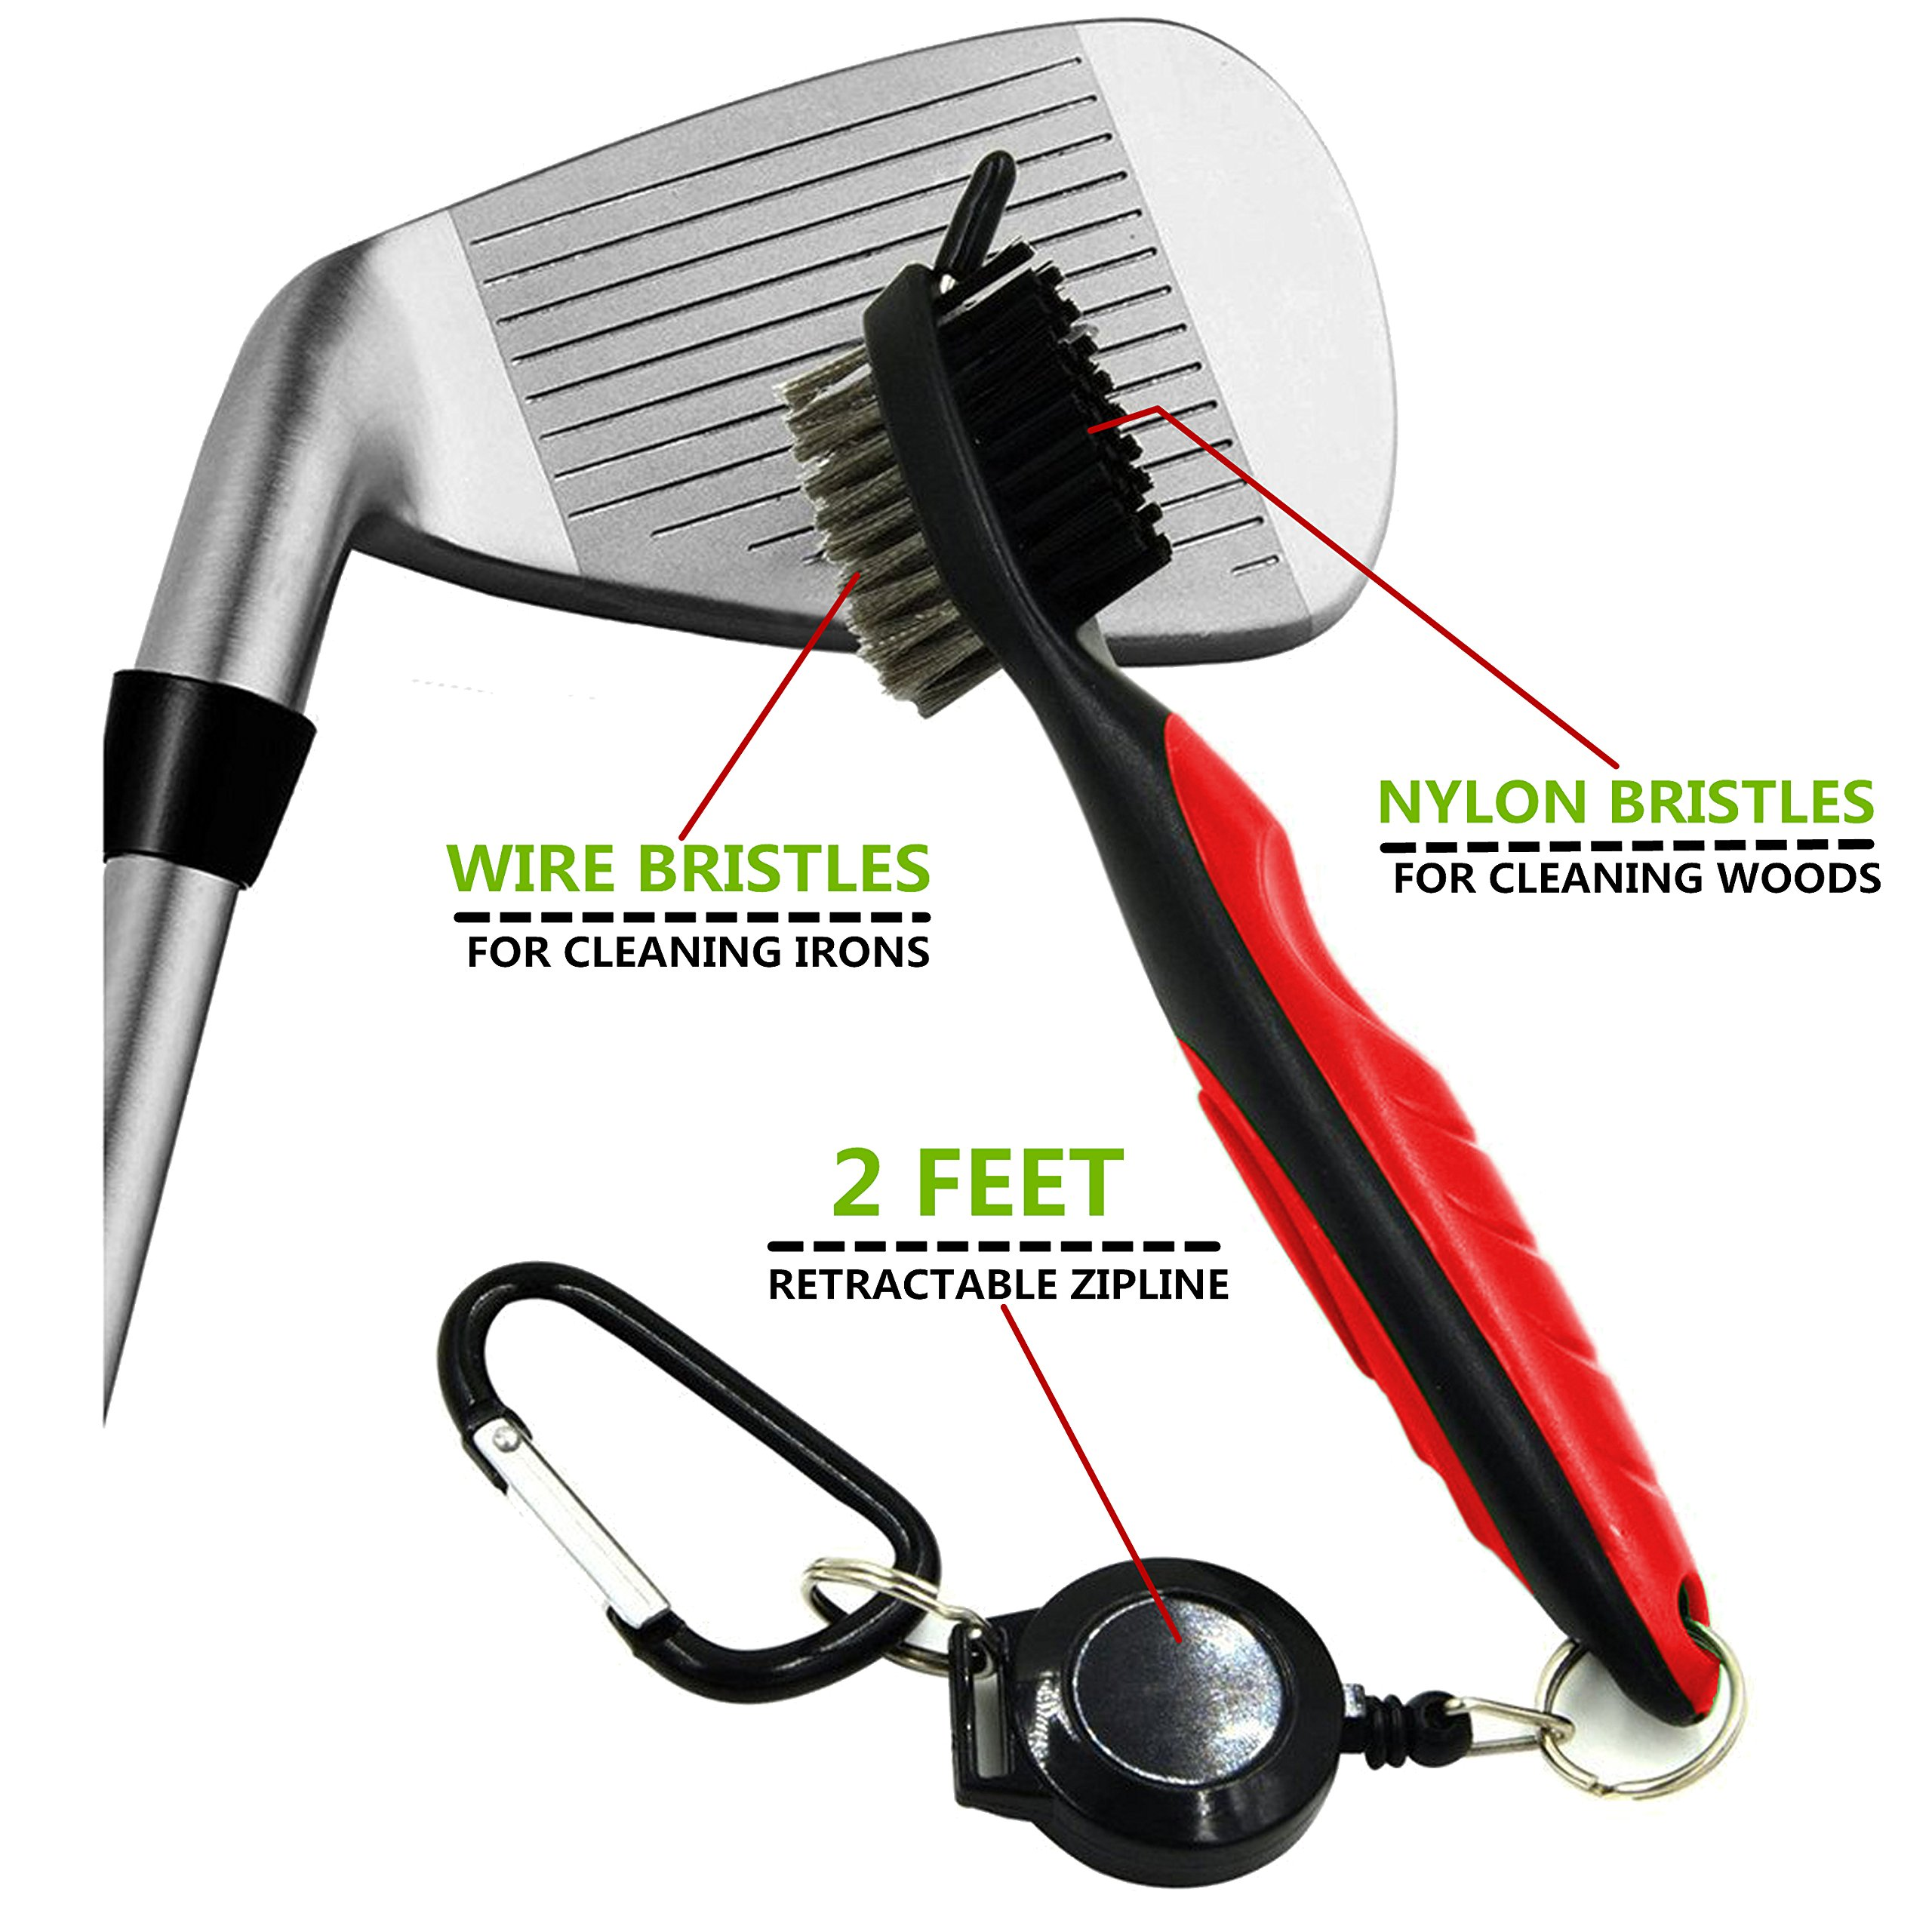 Yoport Golf Club Brush and Club Groove Cleaner 2 Ft Retractable Zip-line Aluminum Carabiner, Lightweight and Stylish, Ergonomic Design, Easily Attaches to Golf Bag (red, Blue, Green) by Yoport (Image #2)